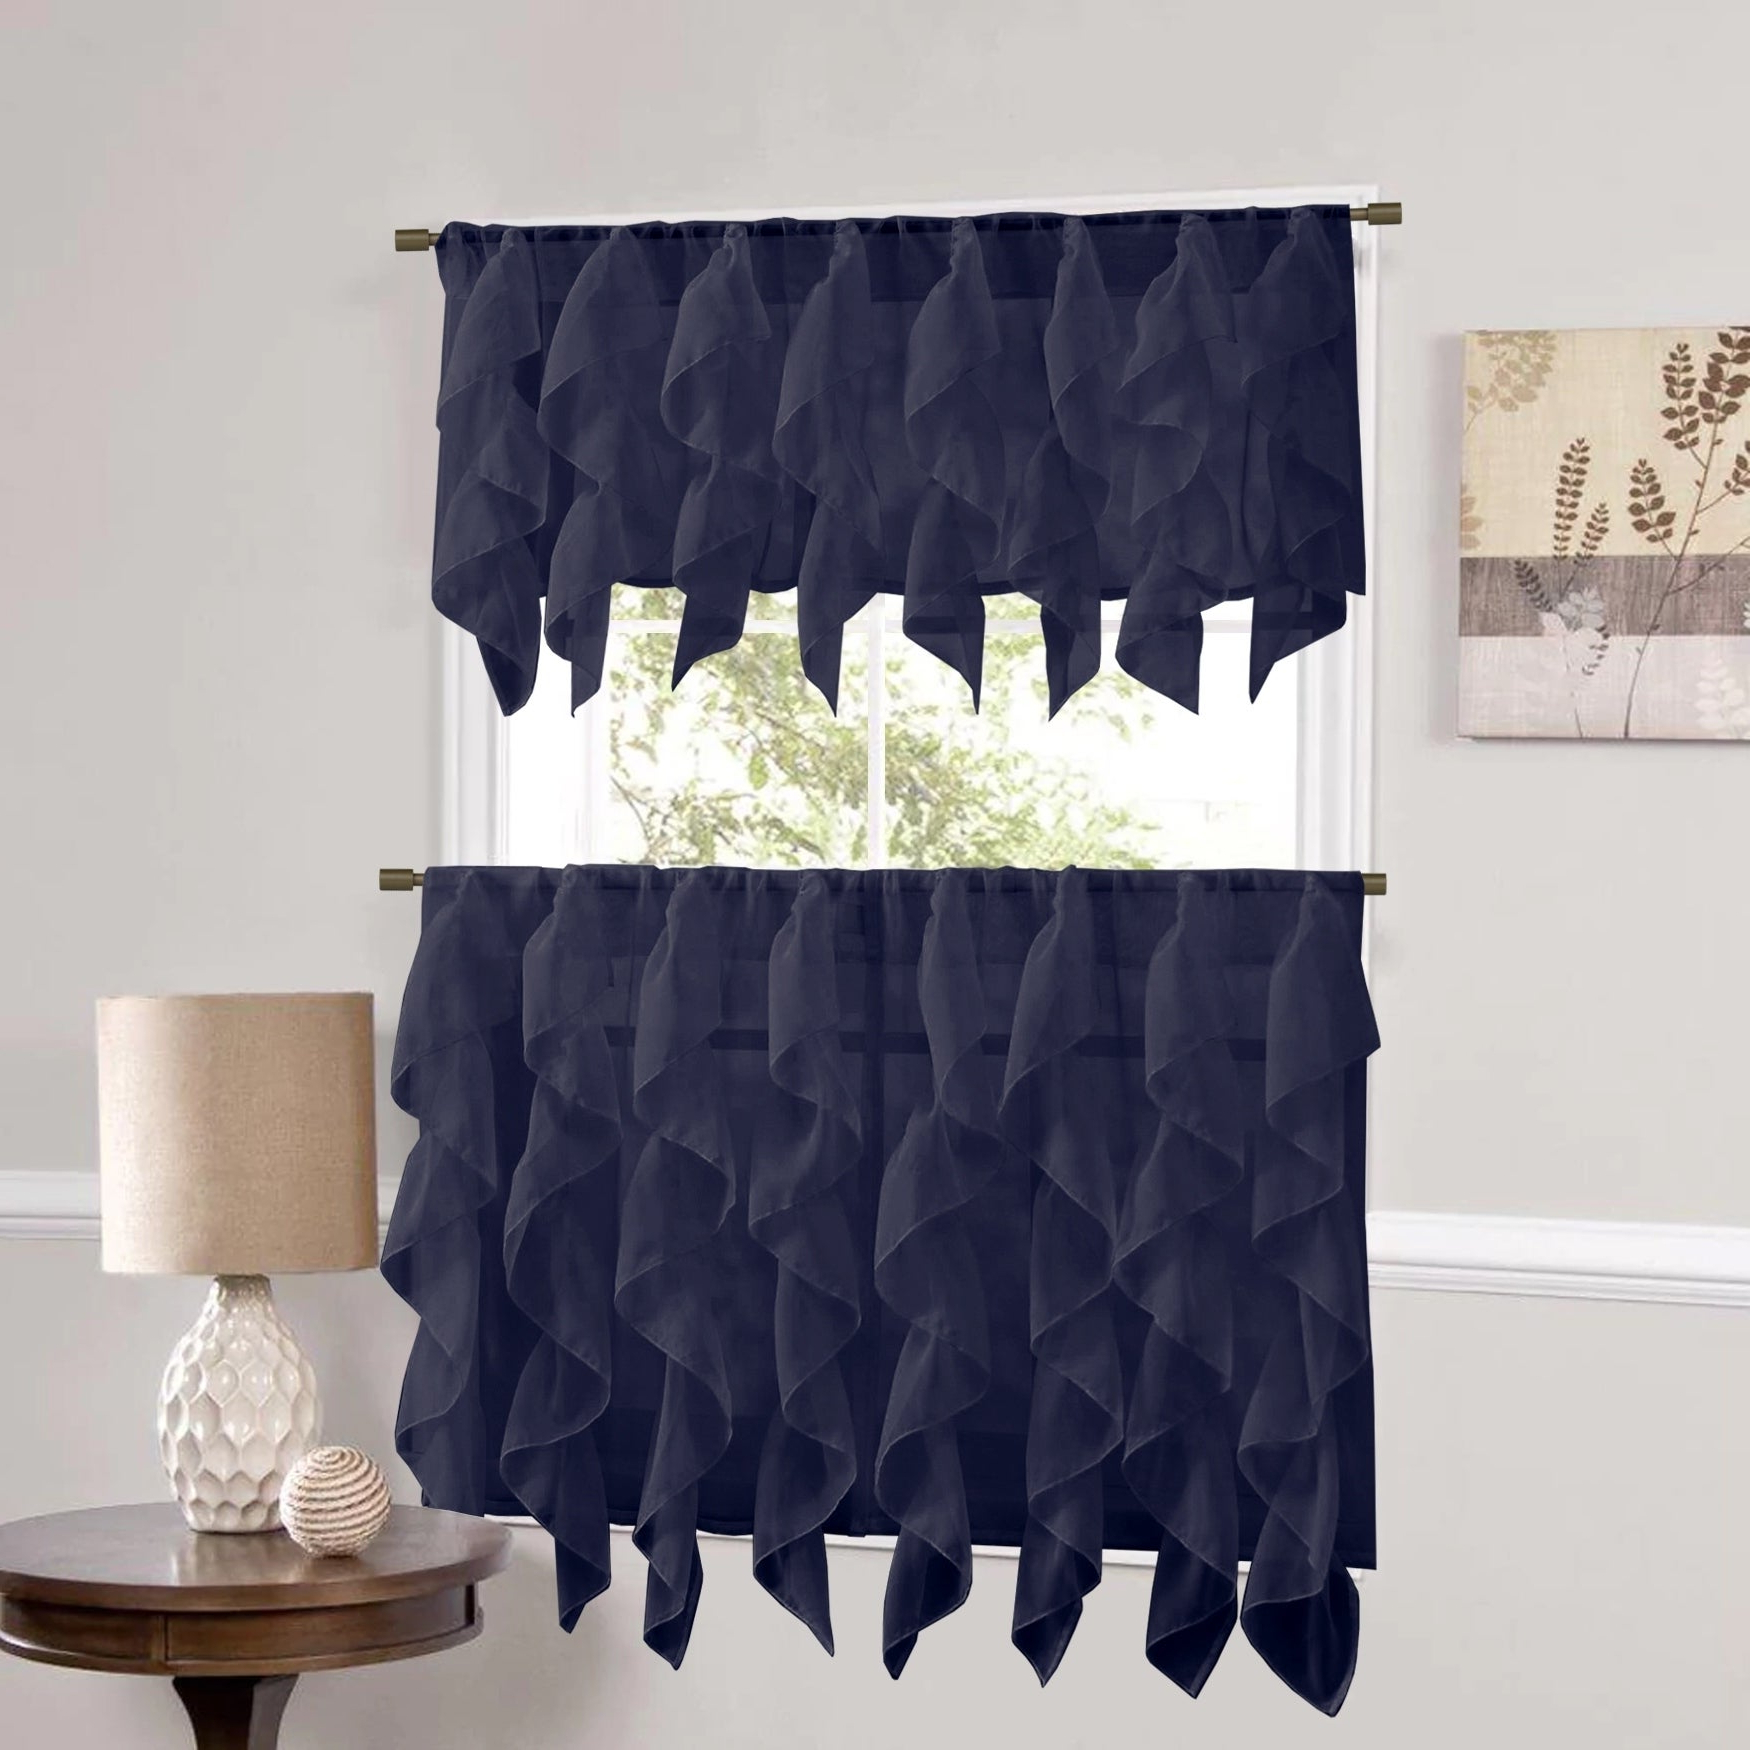 2021 Vertical Ruffled Waterfall Valance And Curtain Tiers For Sweet Home Collection Navy Vertical Ruffled Waterfall Valance And Curtain Tiers (View 2 of 20)